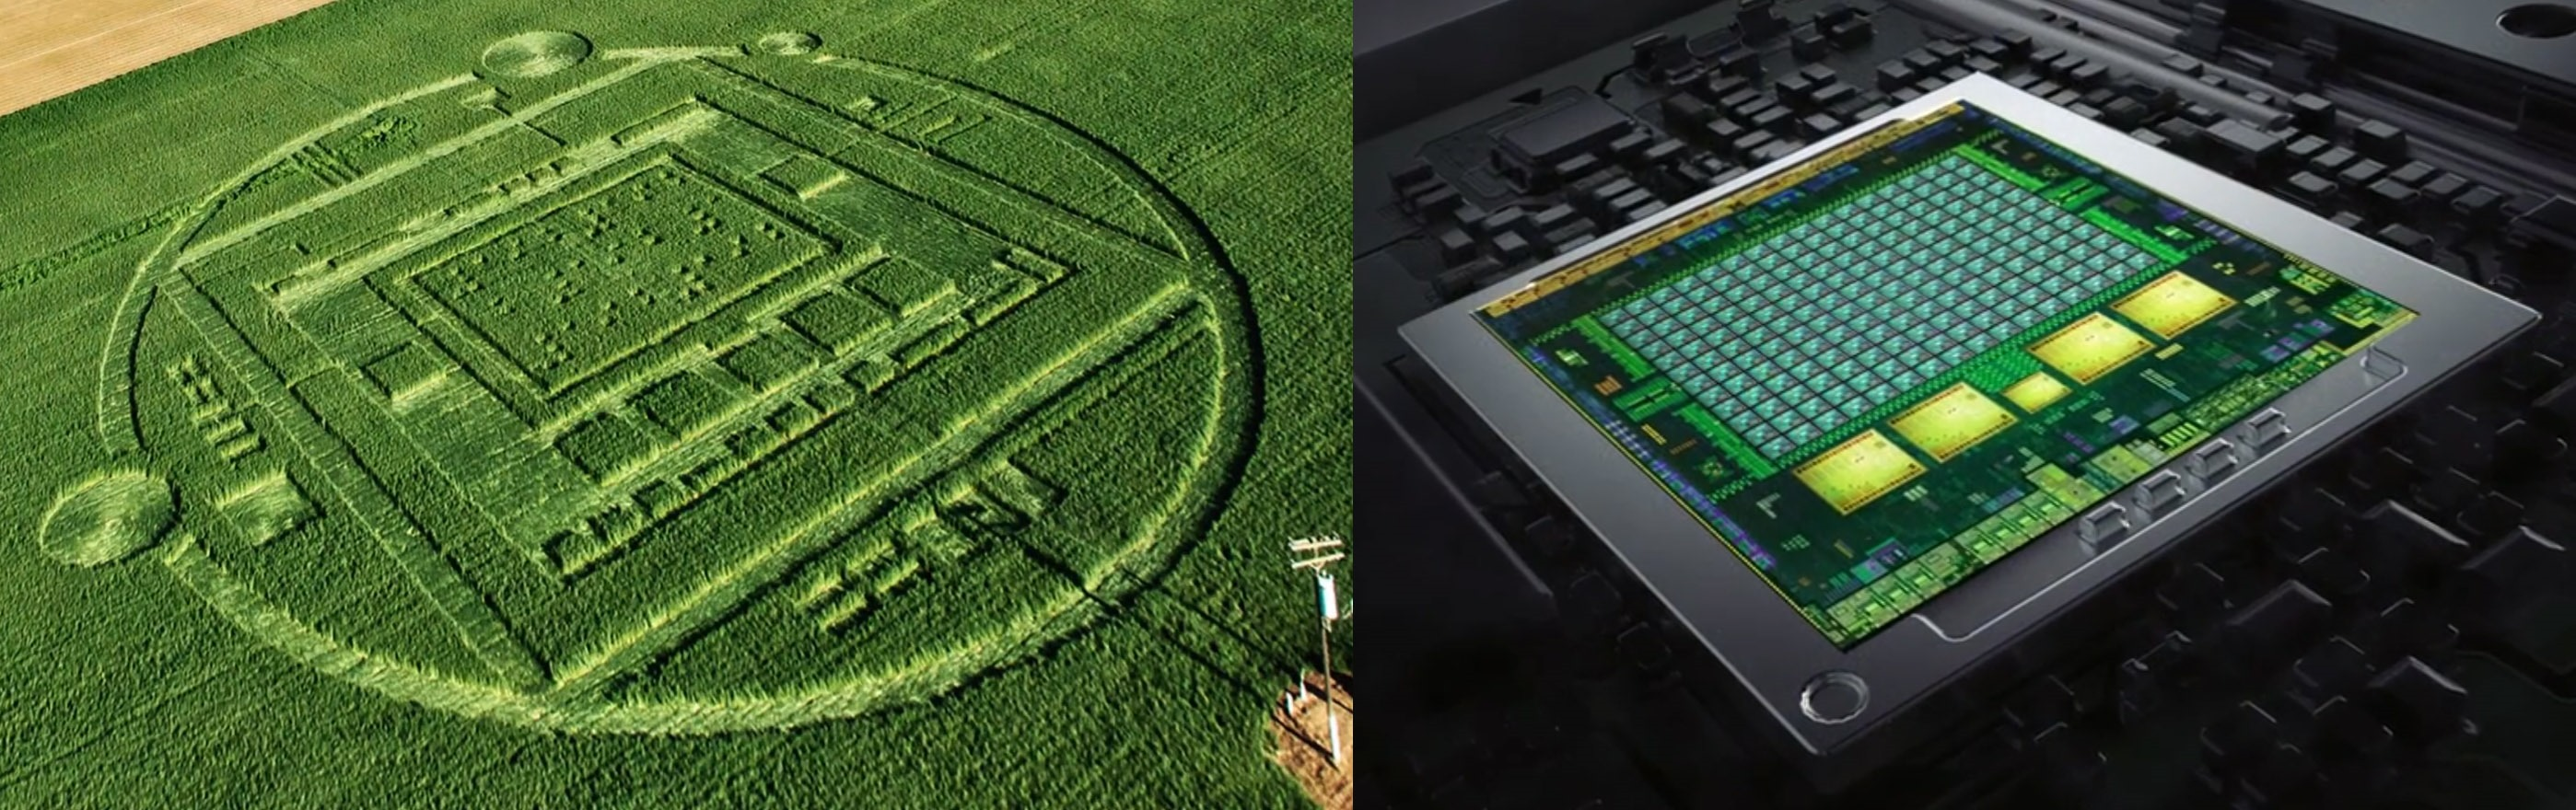 The crop circle roughly mirrors the actual layout of the tegra k1 chip